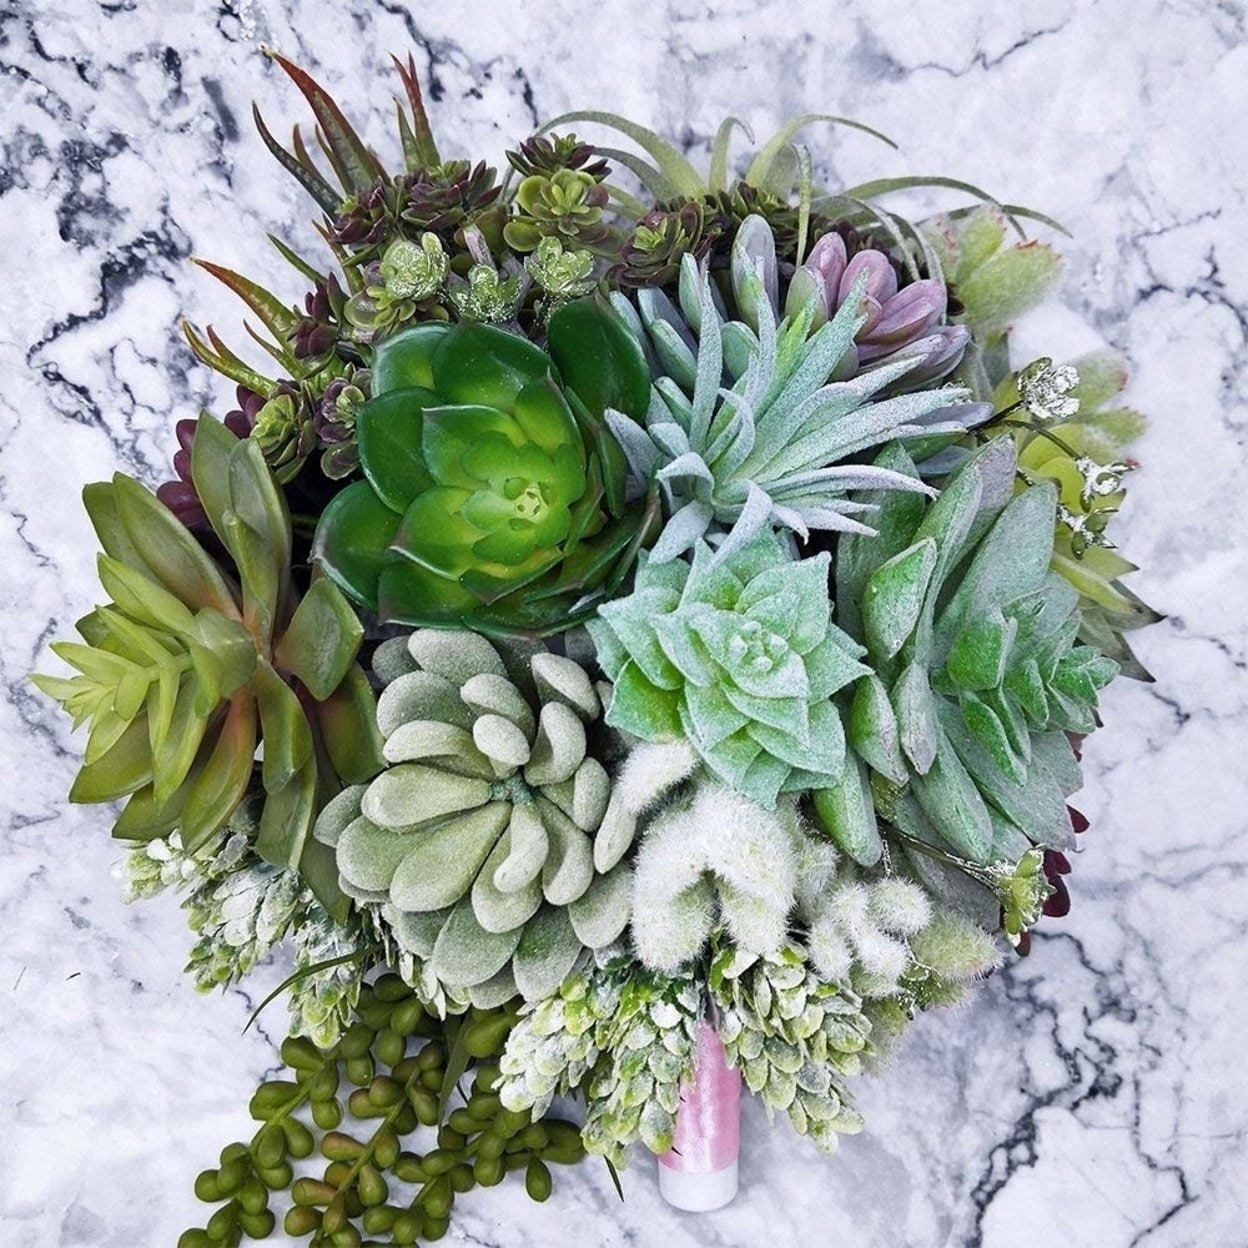 Supla Pack Of 6 Orted Artificial Succulents Plant Picks Textured Faux Succulent Pick Succulent Stems Fake Succulent Bouquet St Overstock 27728531